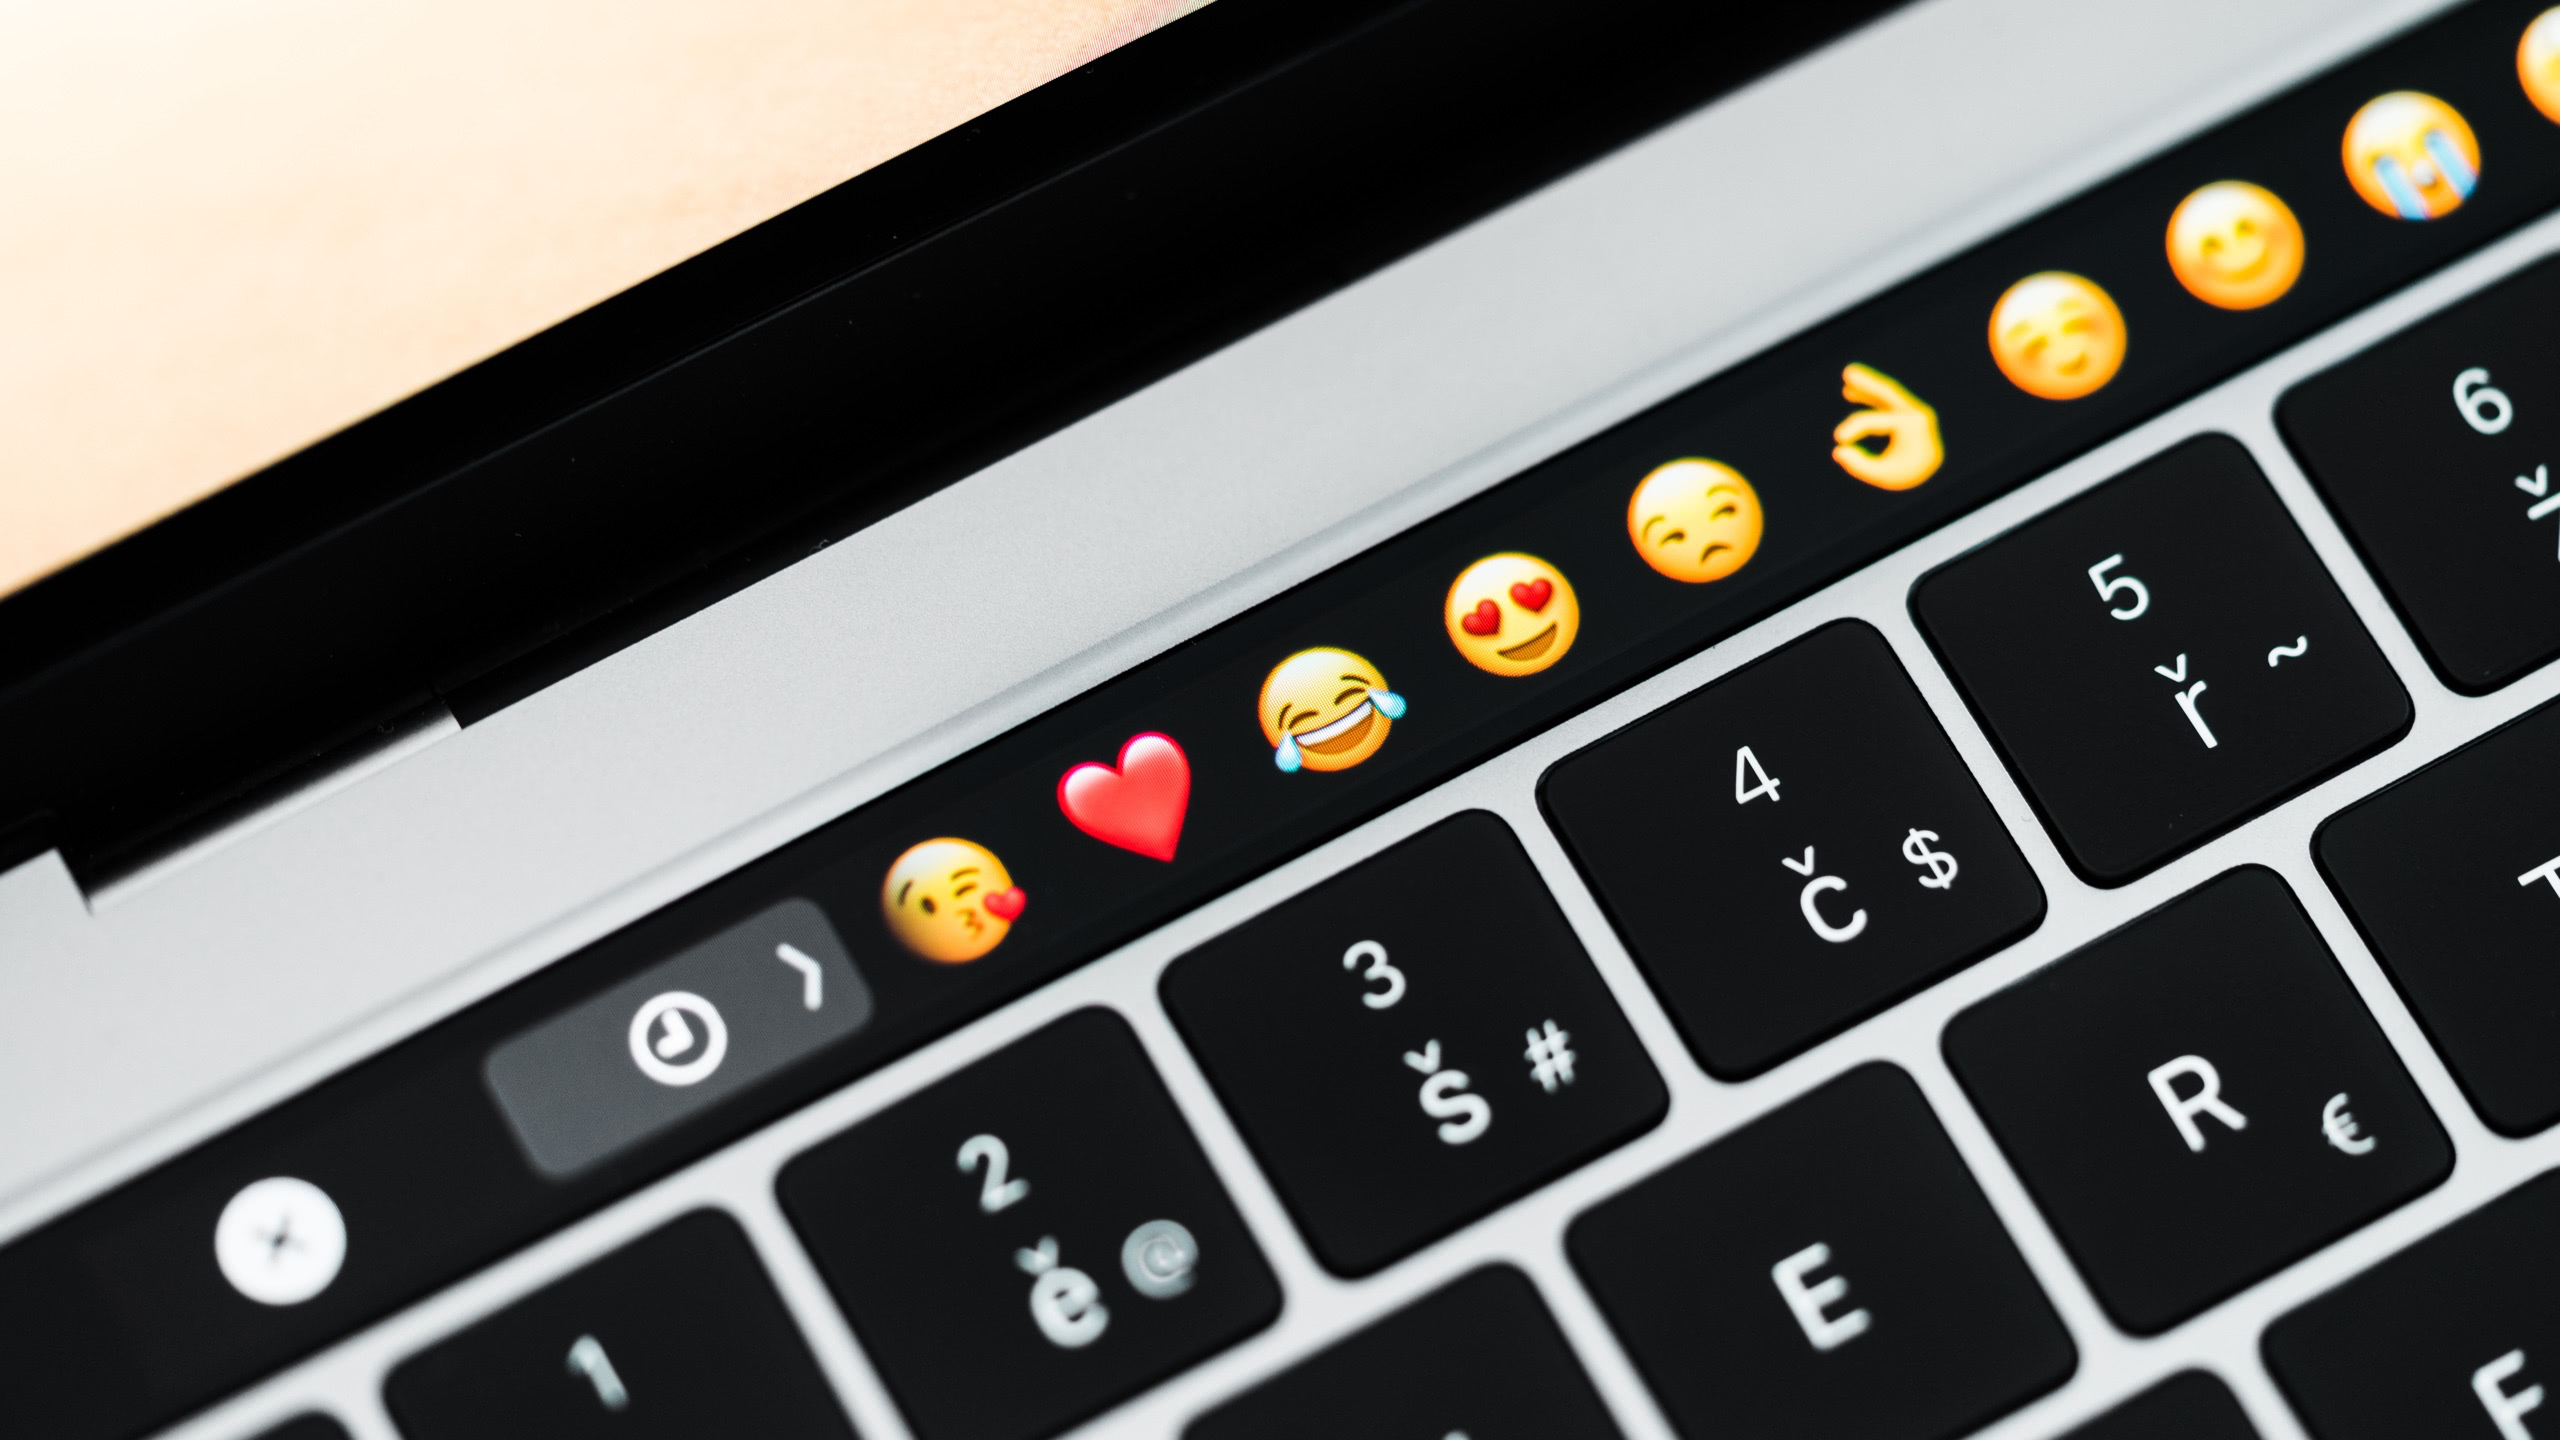 emoji macbook pro touch bar 16x9